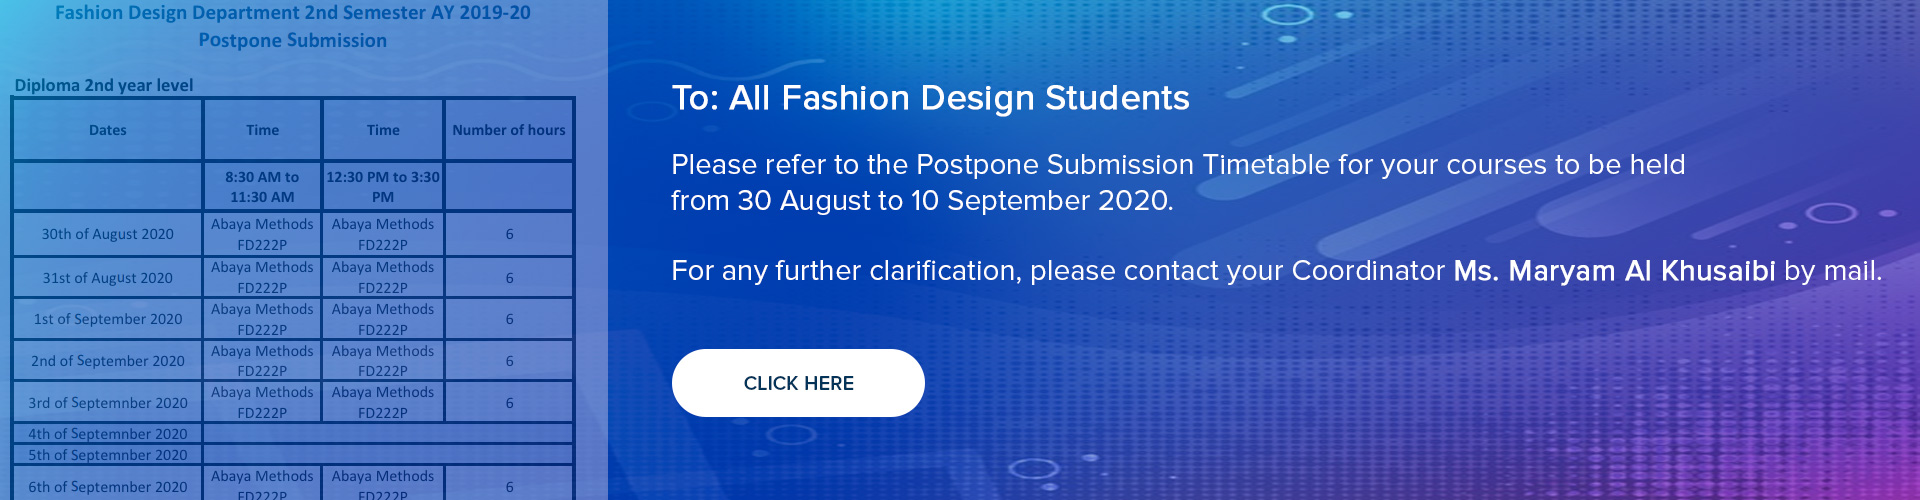 Fashion Design Department - 2nd Semester AY 2019-20 Postpone Submission